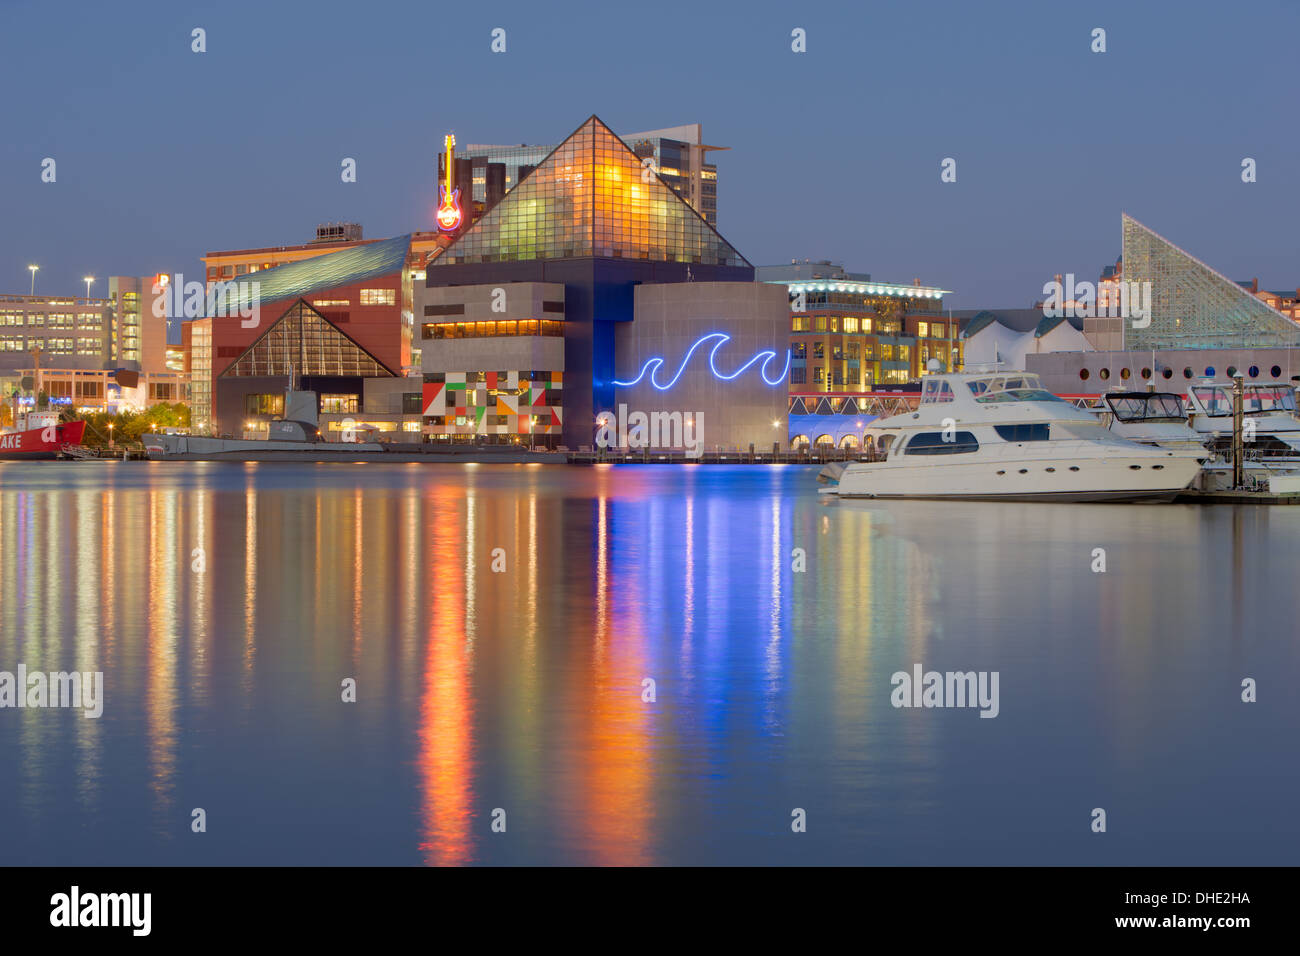 Lights from the National Aquarium reflect off the waters of the Inner Harbor during evening twilight in Baltimore, Maryland. - Stock Image